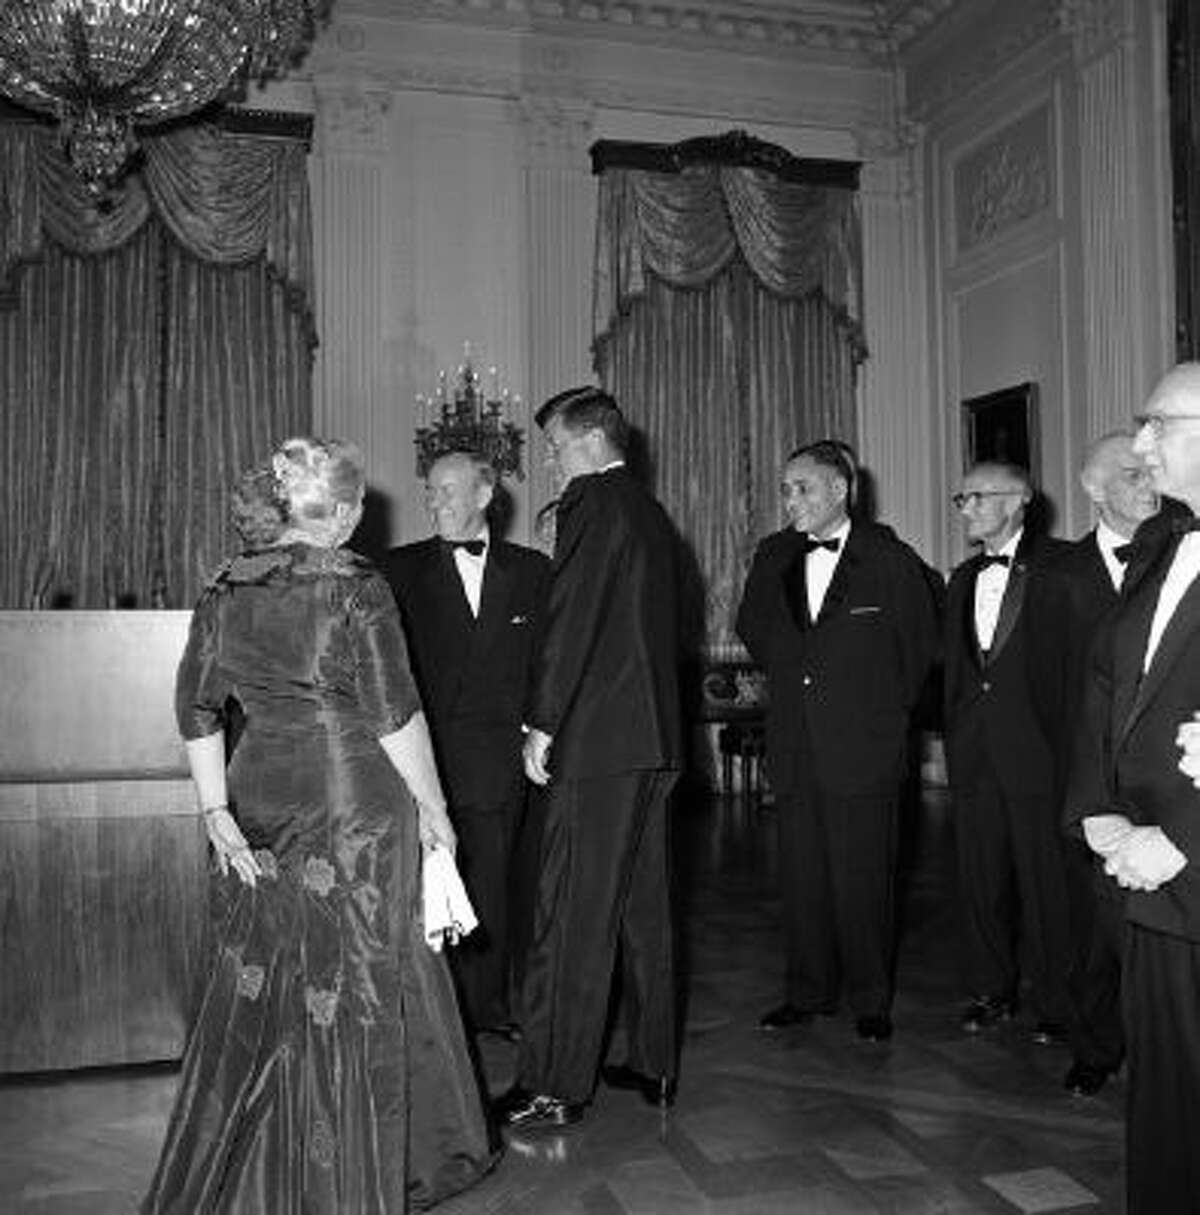 President John F. Kennedy and Lester Pearson, leader of Canada's Liberal Party and winner of the 1957 Nobel Peace Prize, talk at the White House, Washington, April 29, 1962 with Pearl Buck, back to camera, and Pearson's wife Maryon, before a White House dinner honoring Nobel Prize winner of the western Hemisphere.